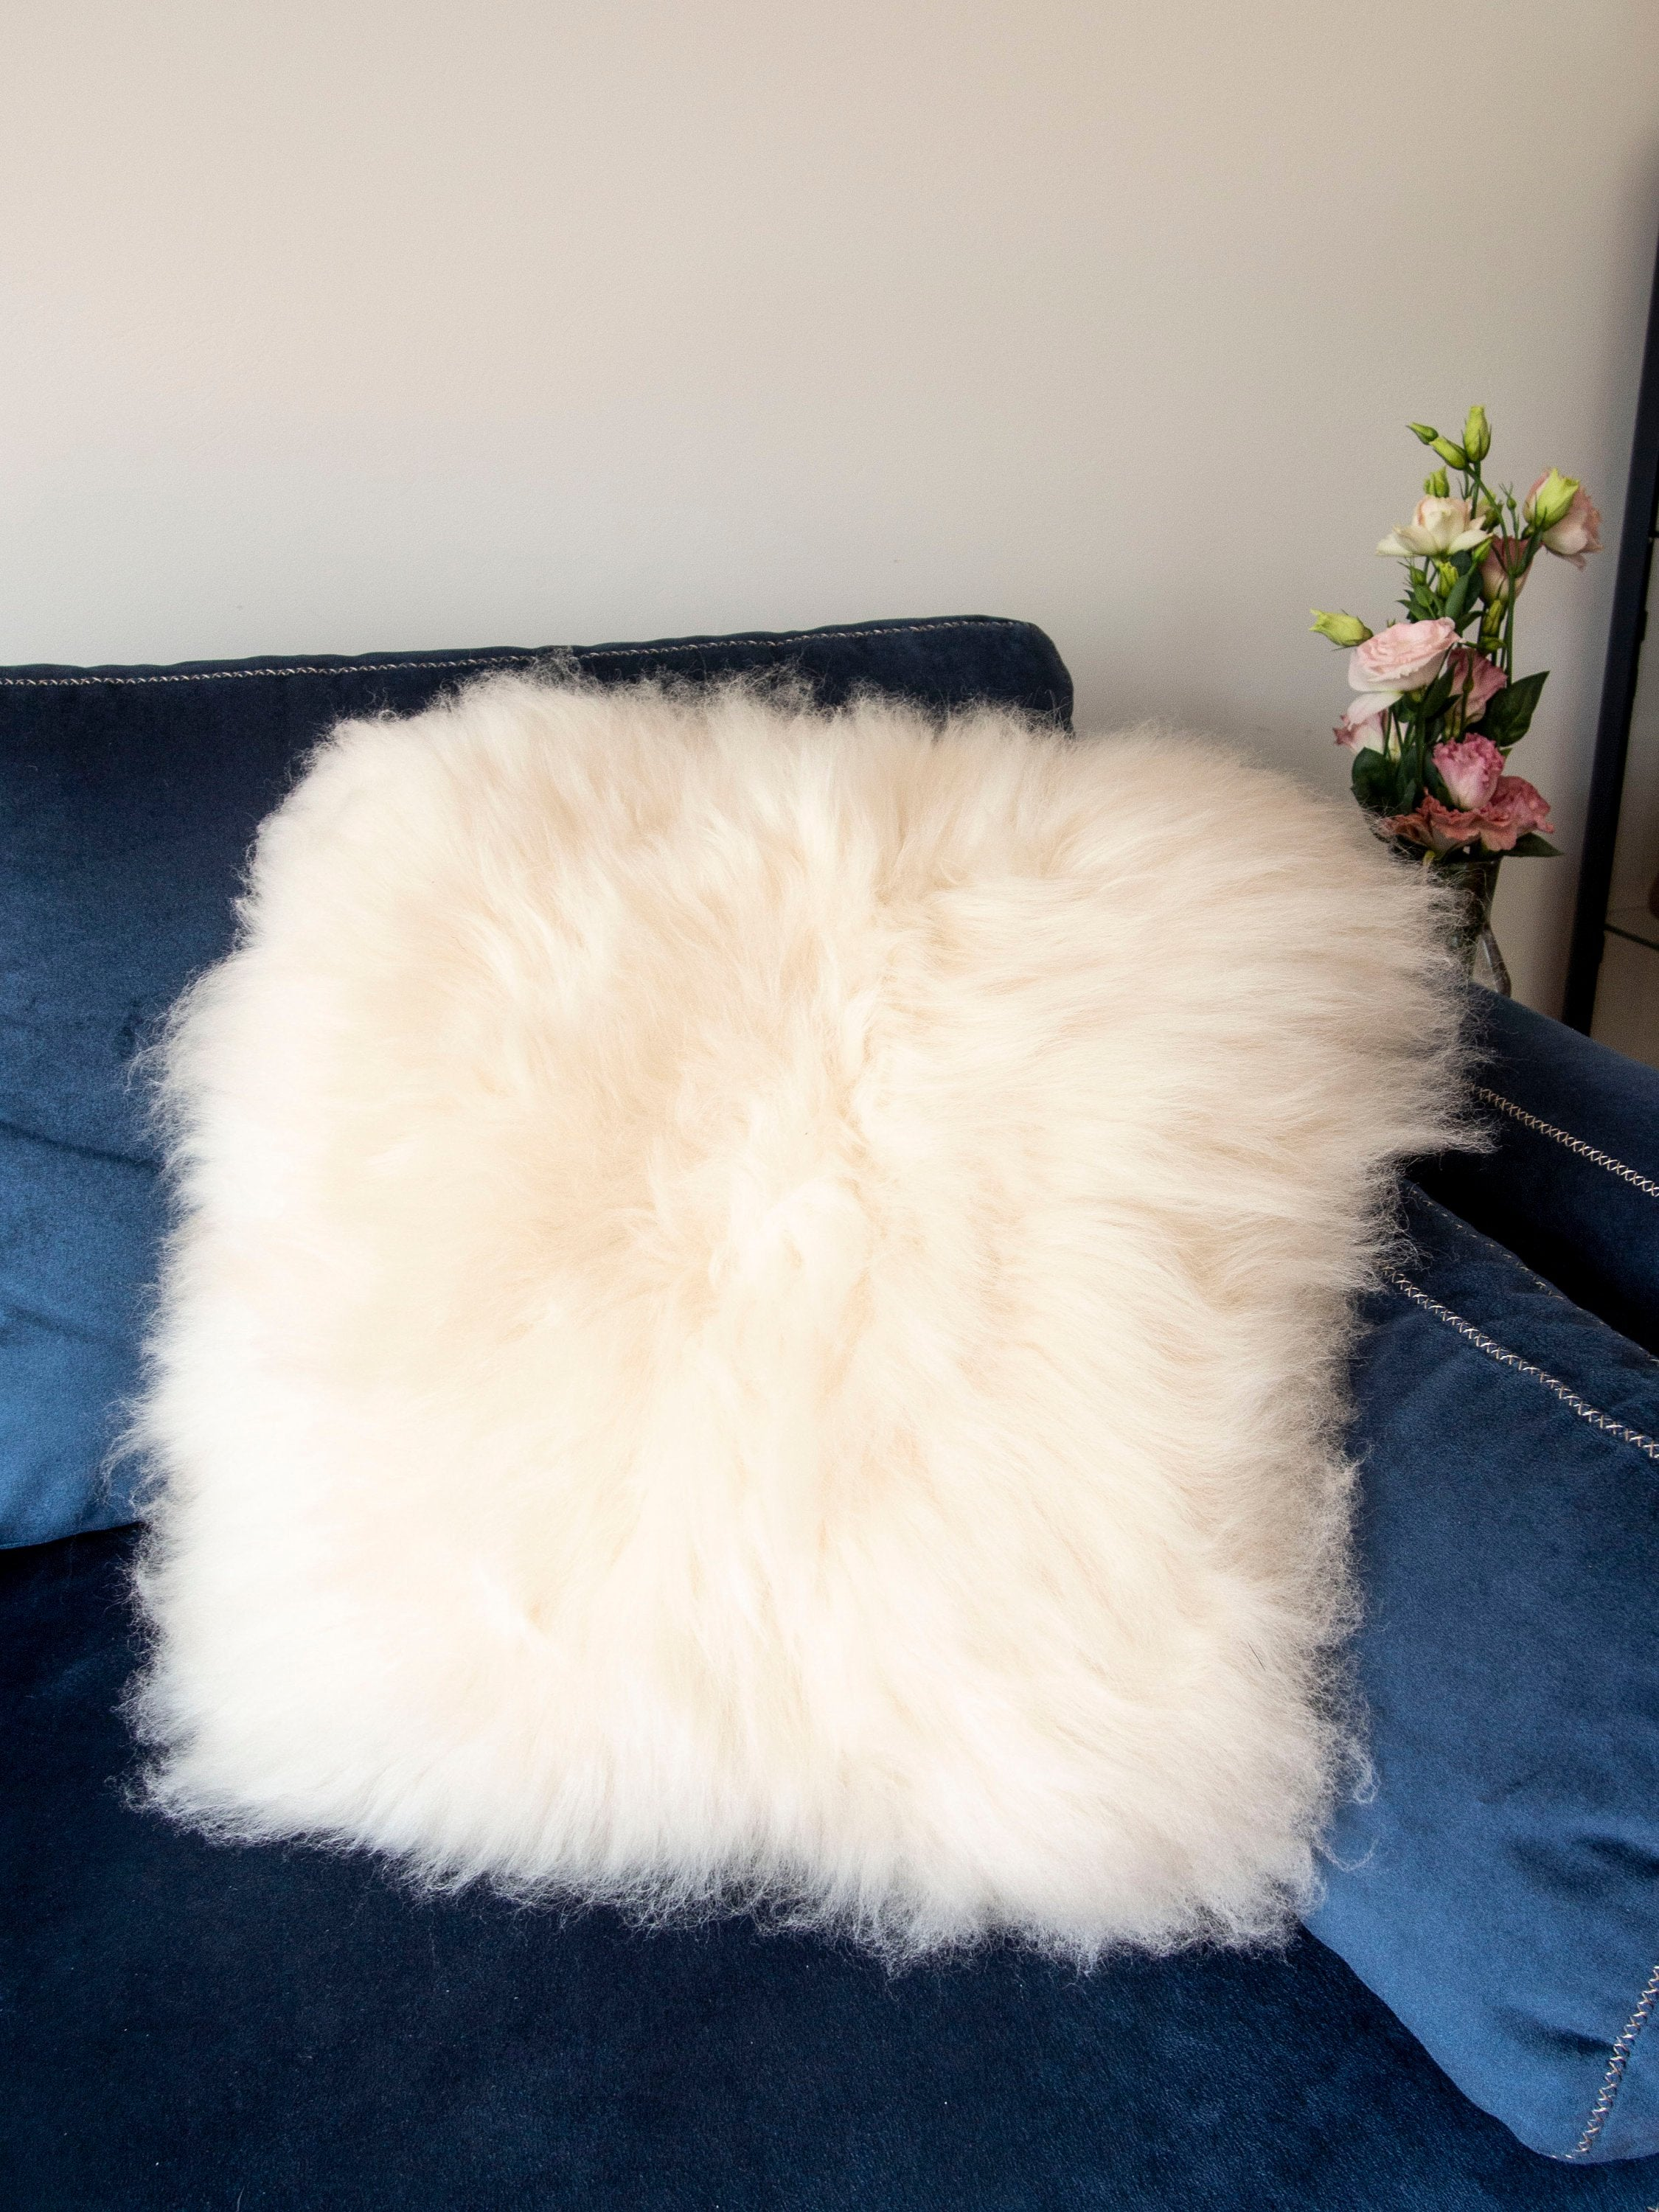 Square Furry Pillow.